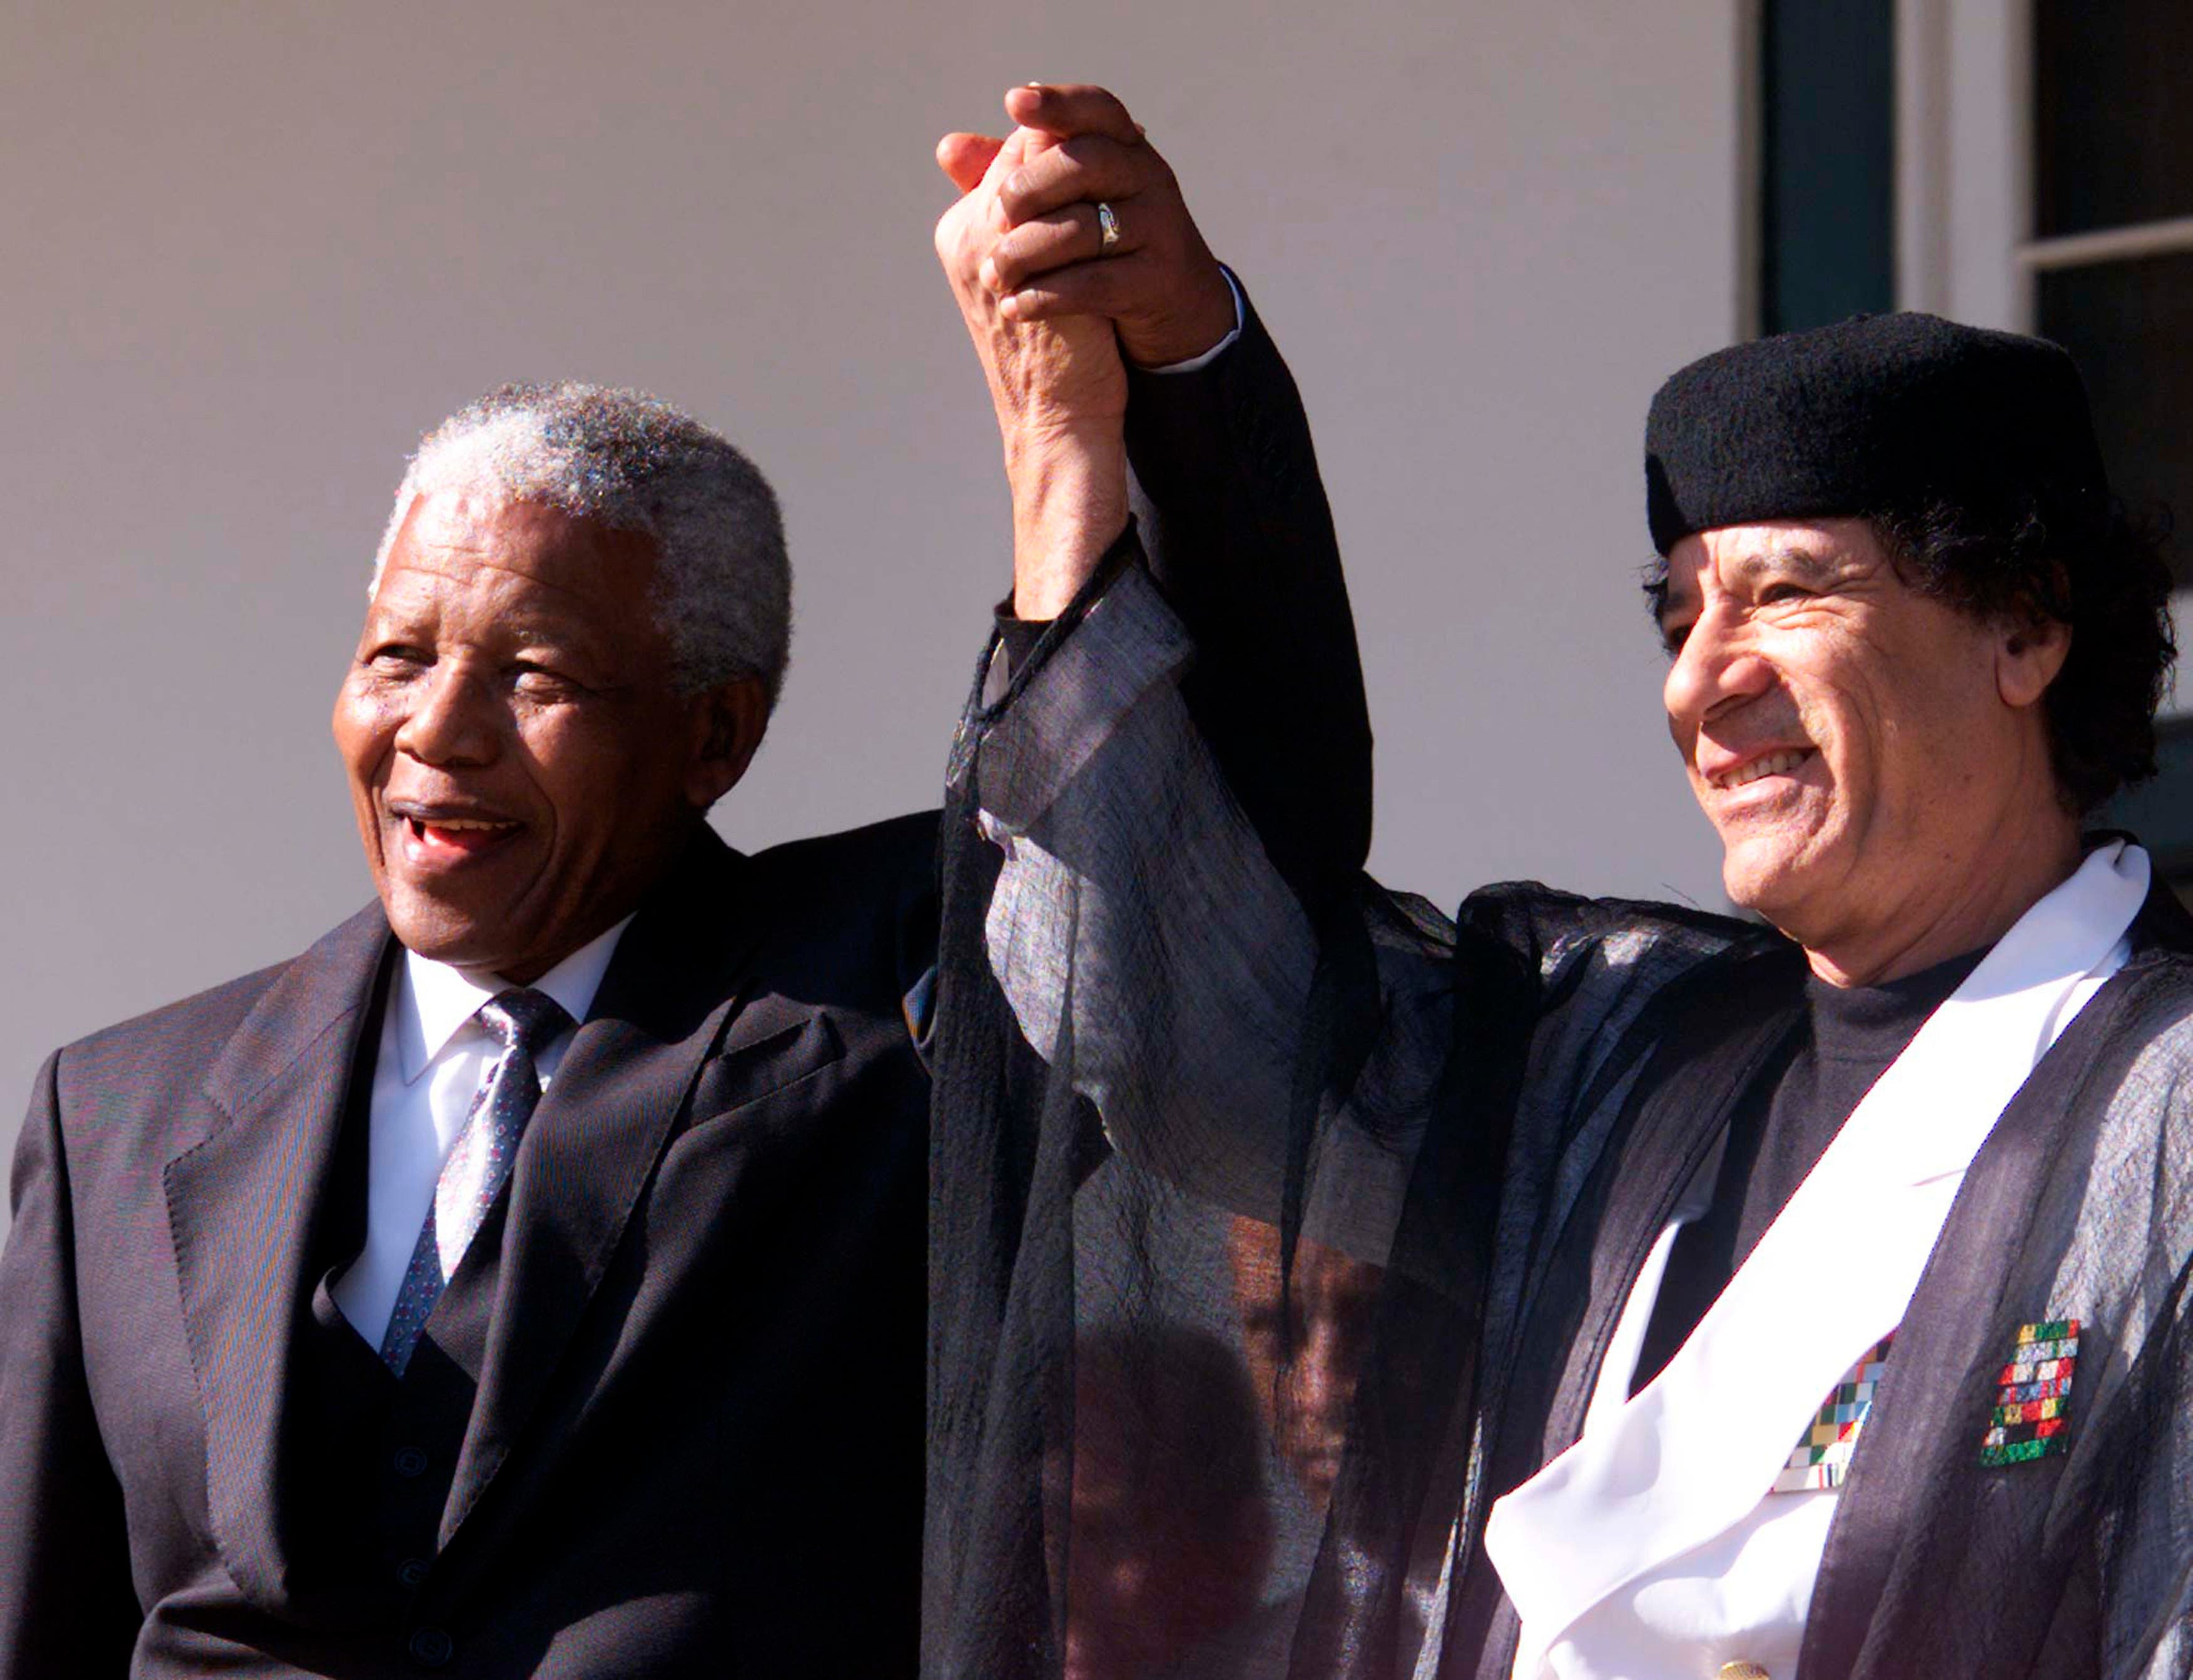 South African President Nelson Mandela and Libyan leader Muammar Qaddafi, pictured here in 1999, were staunch allies. (Reuters)